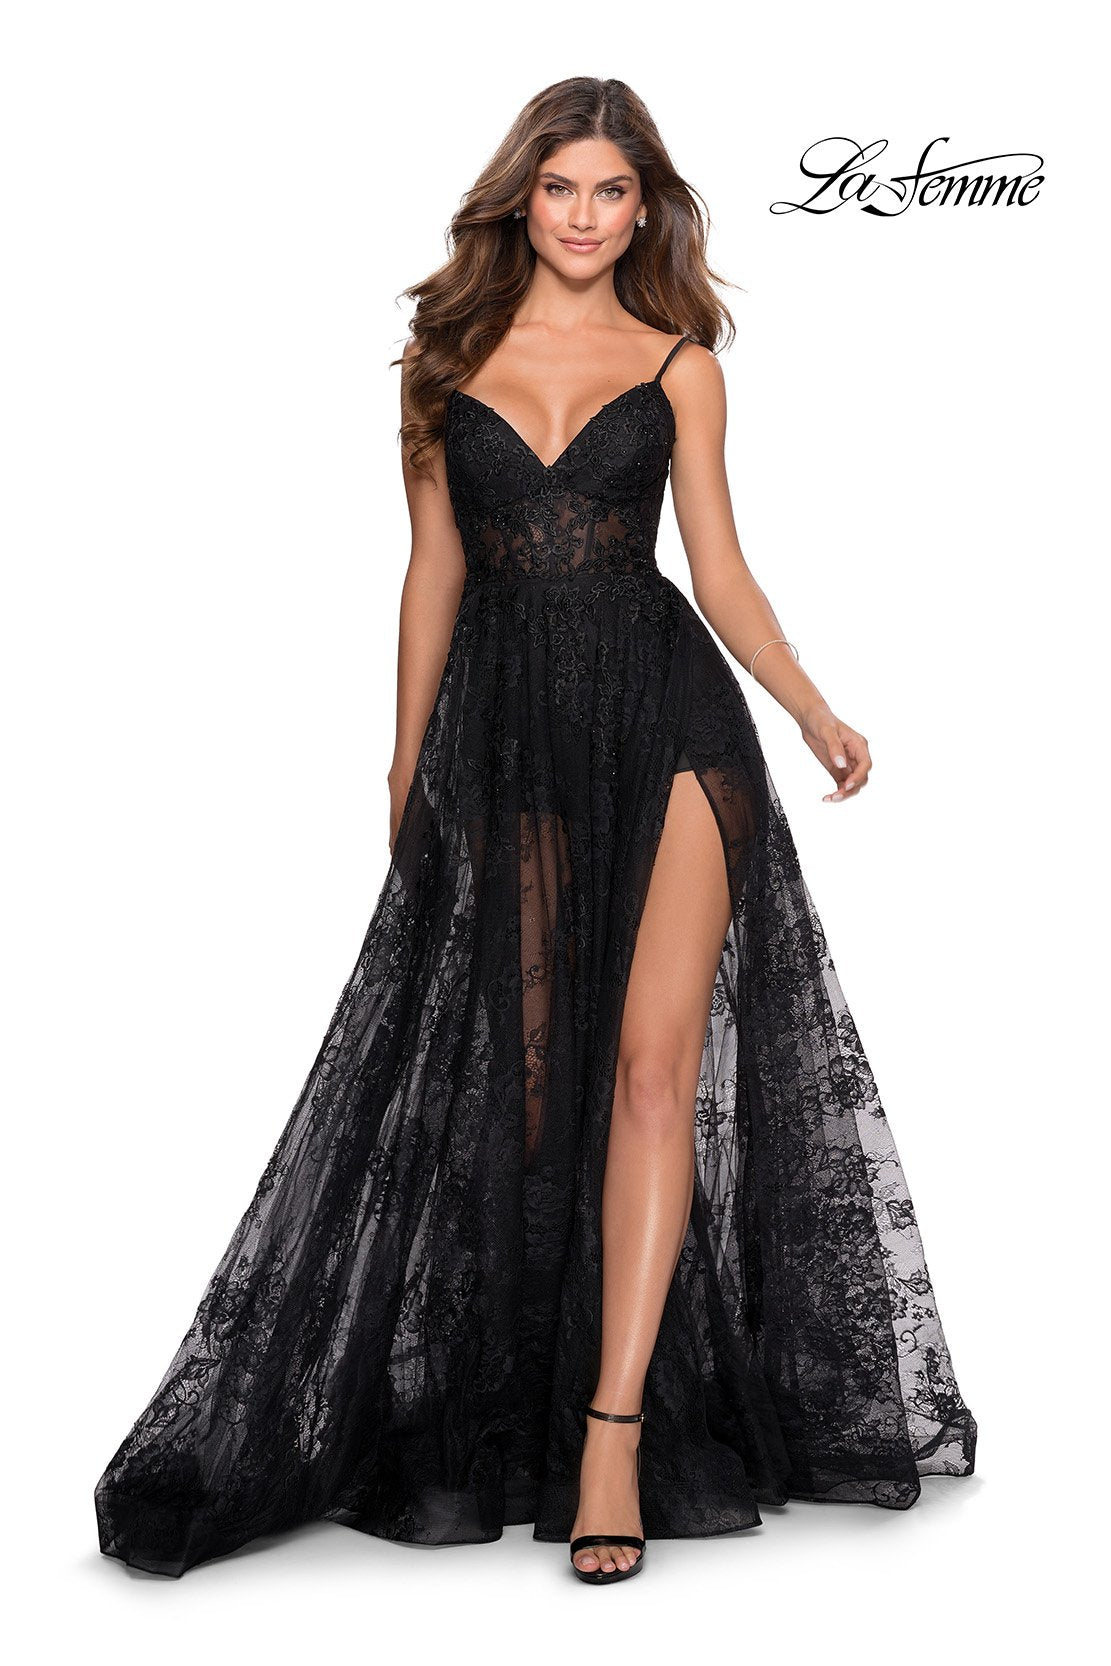 La Femme 28390 prom dress images.  La Femme 28390 is available in these colors: Black.